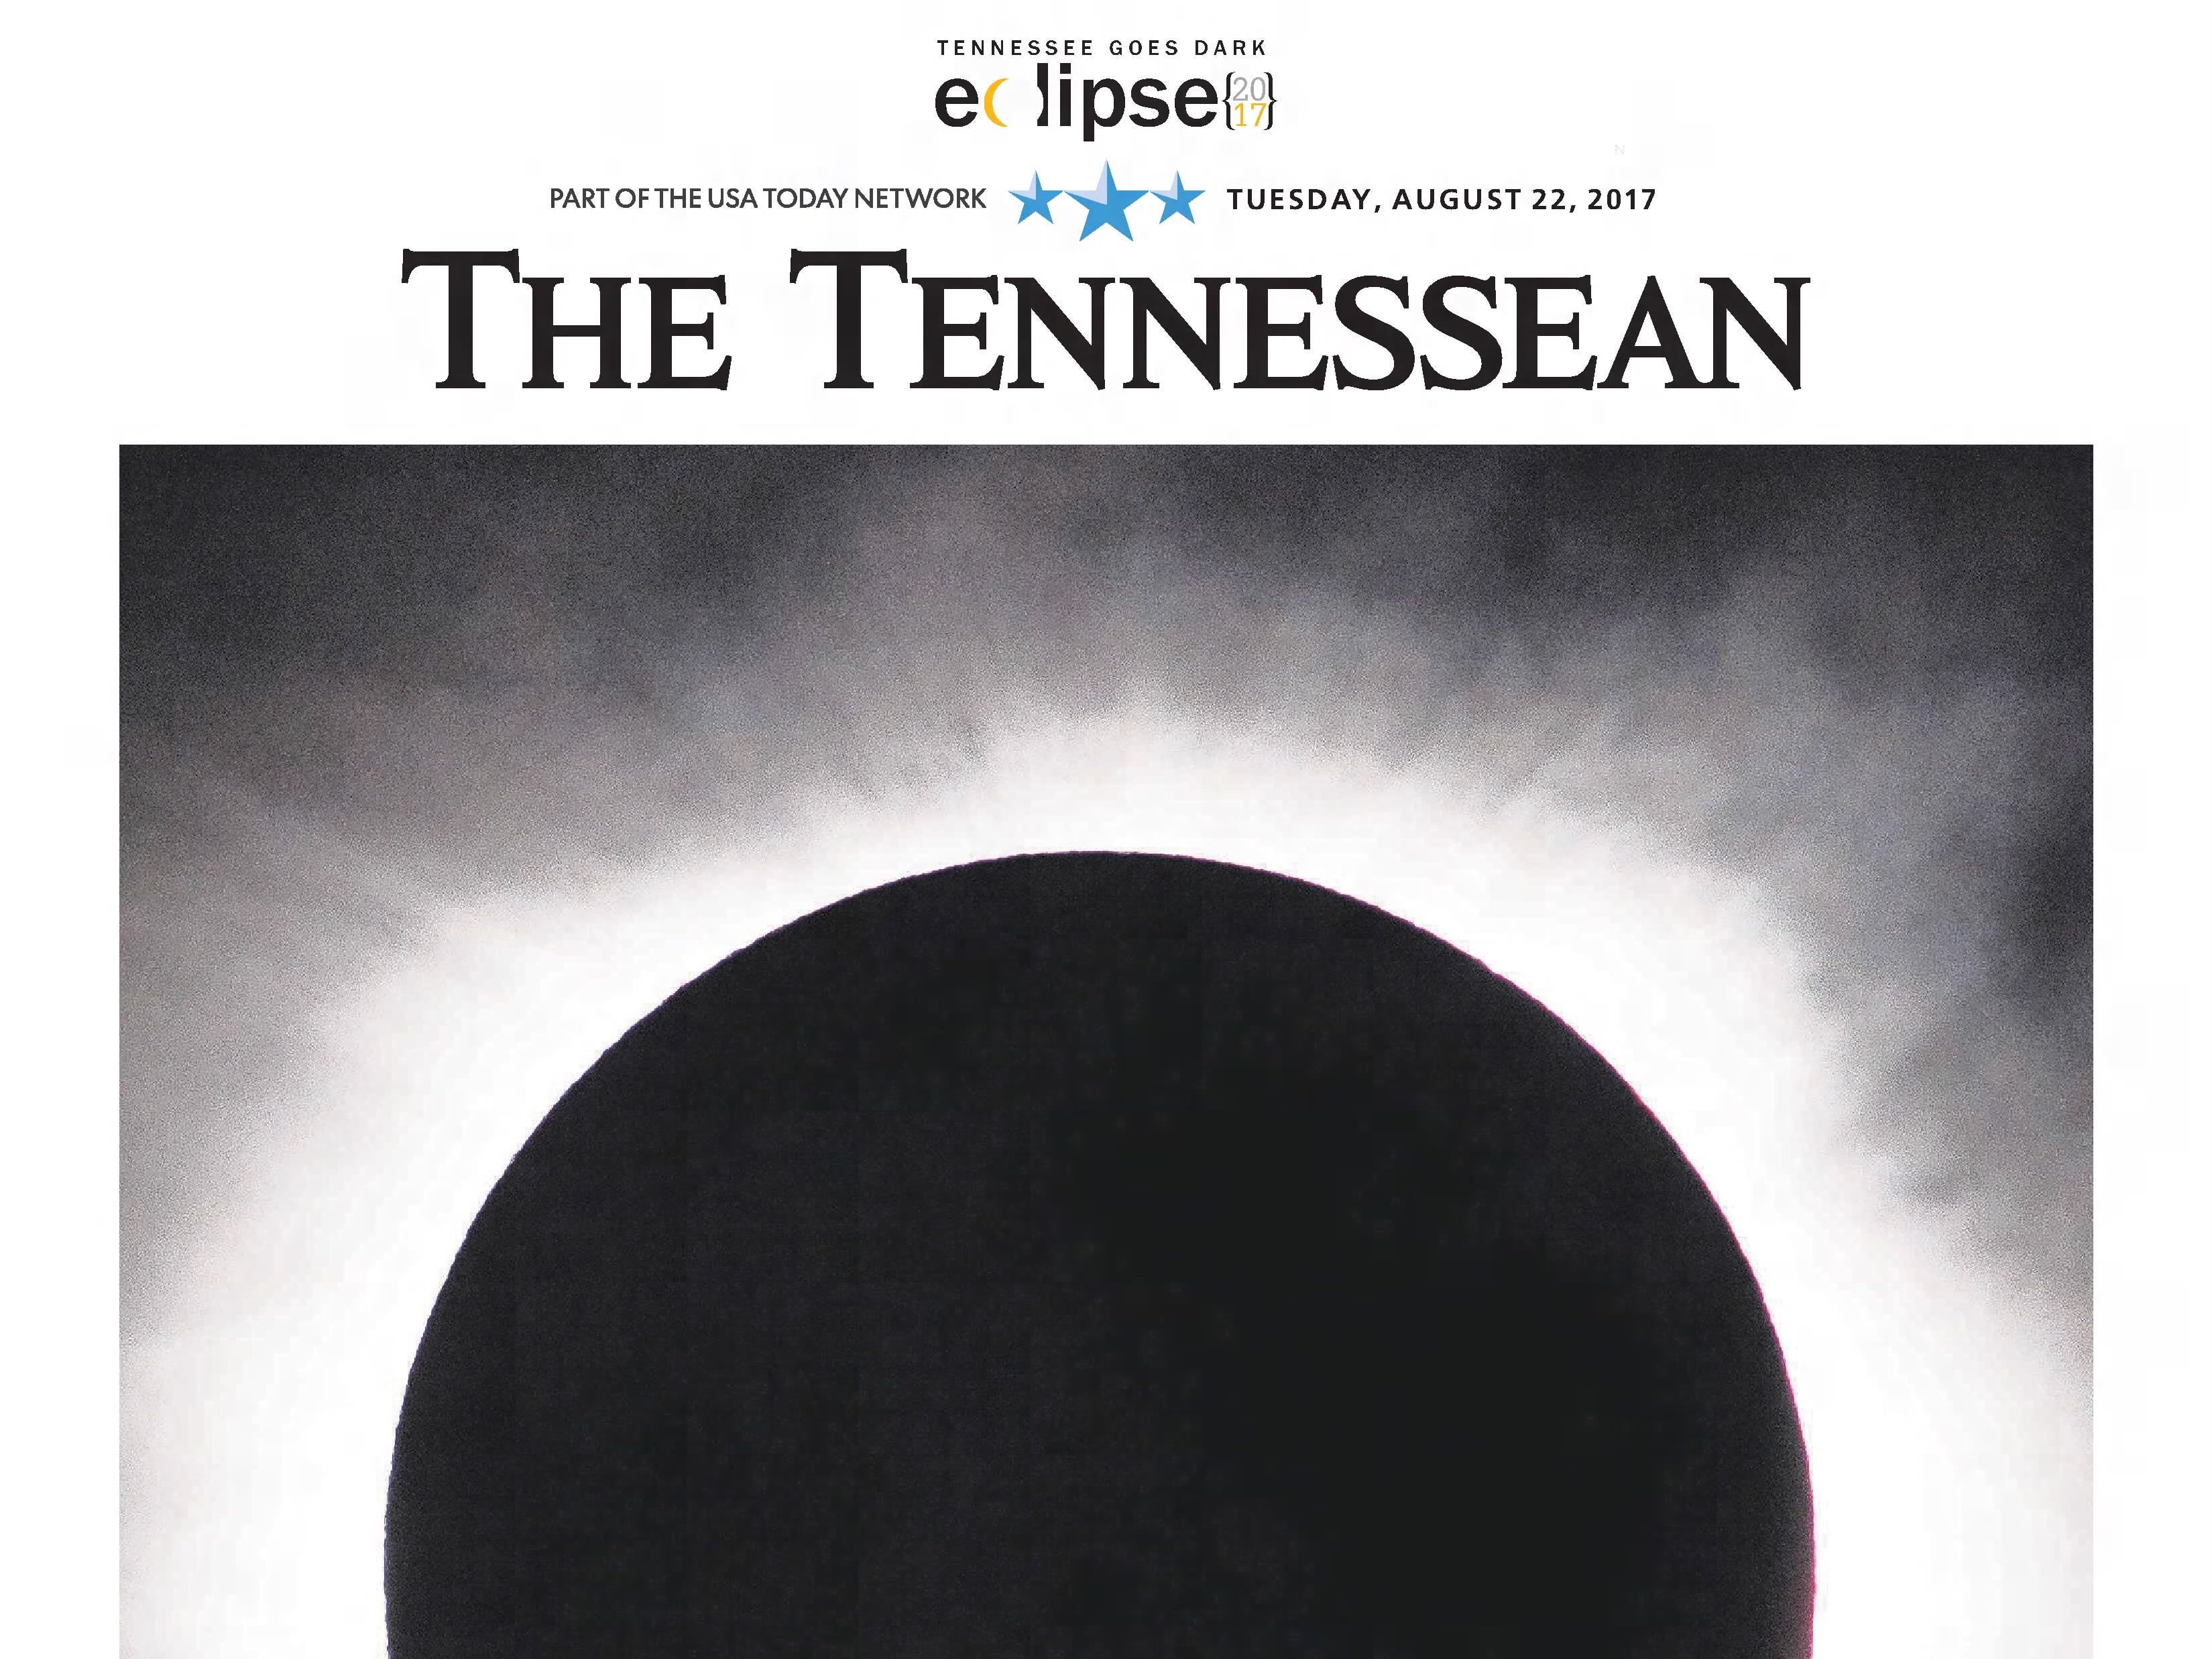 The front page of the Aug. 22, 2017 of The Tennessean for the coverage of the Music City solar eclipse.